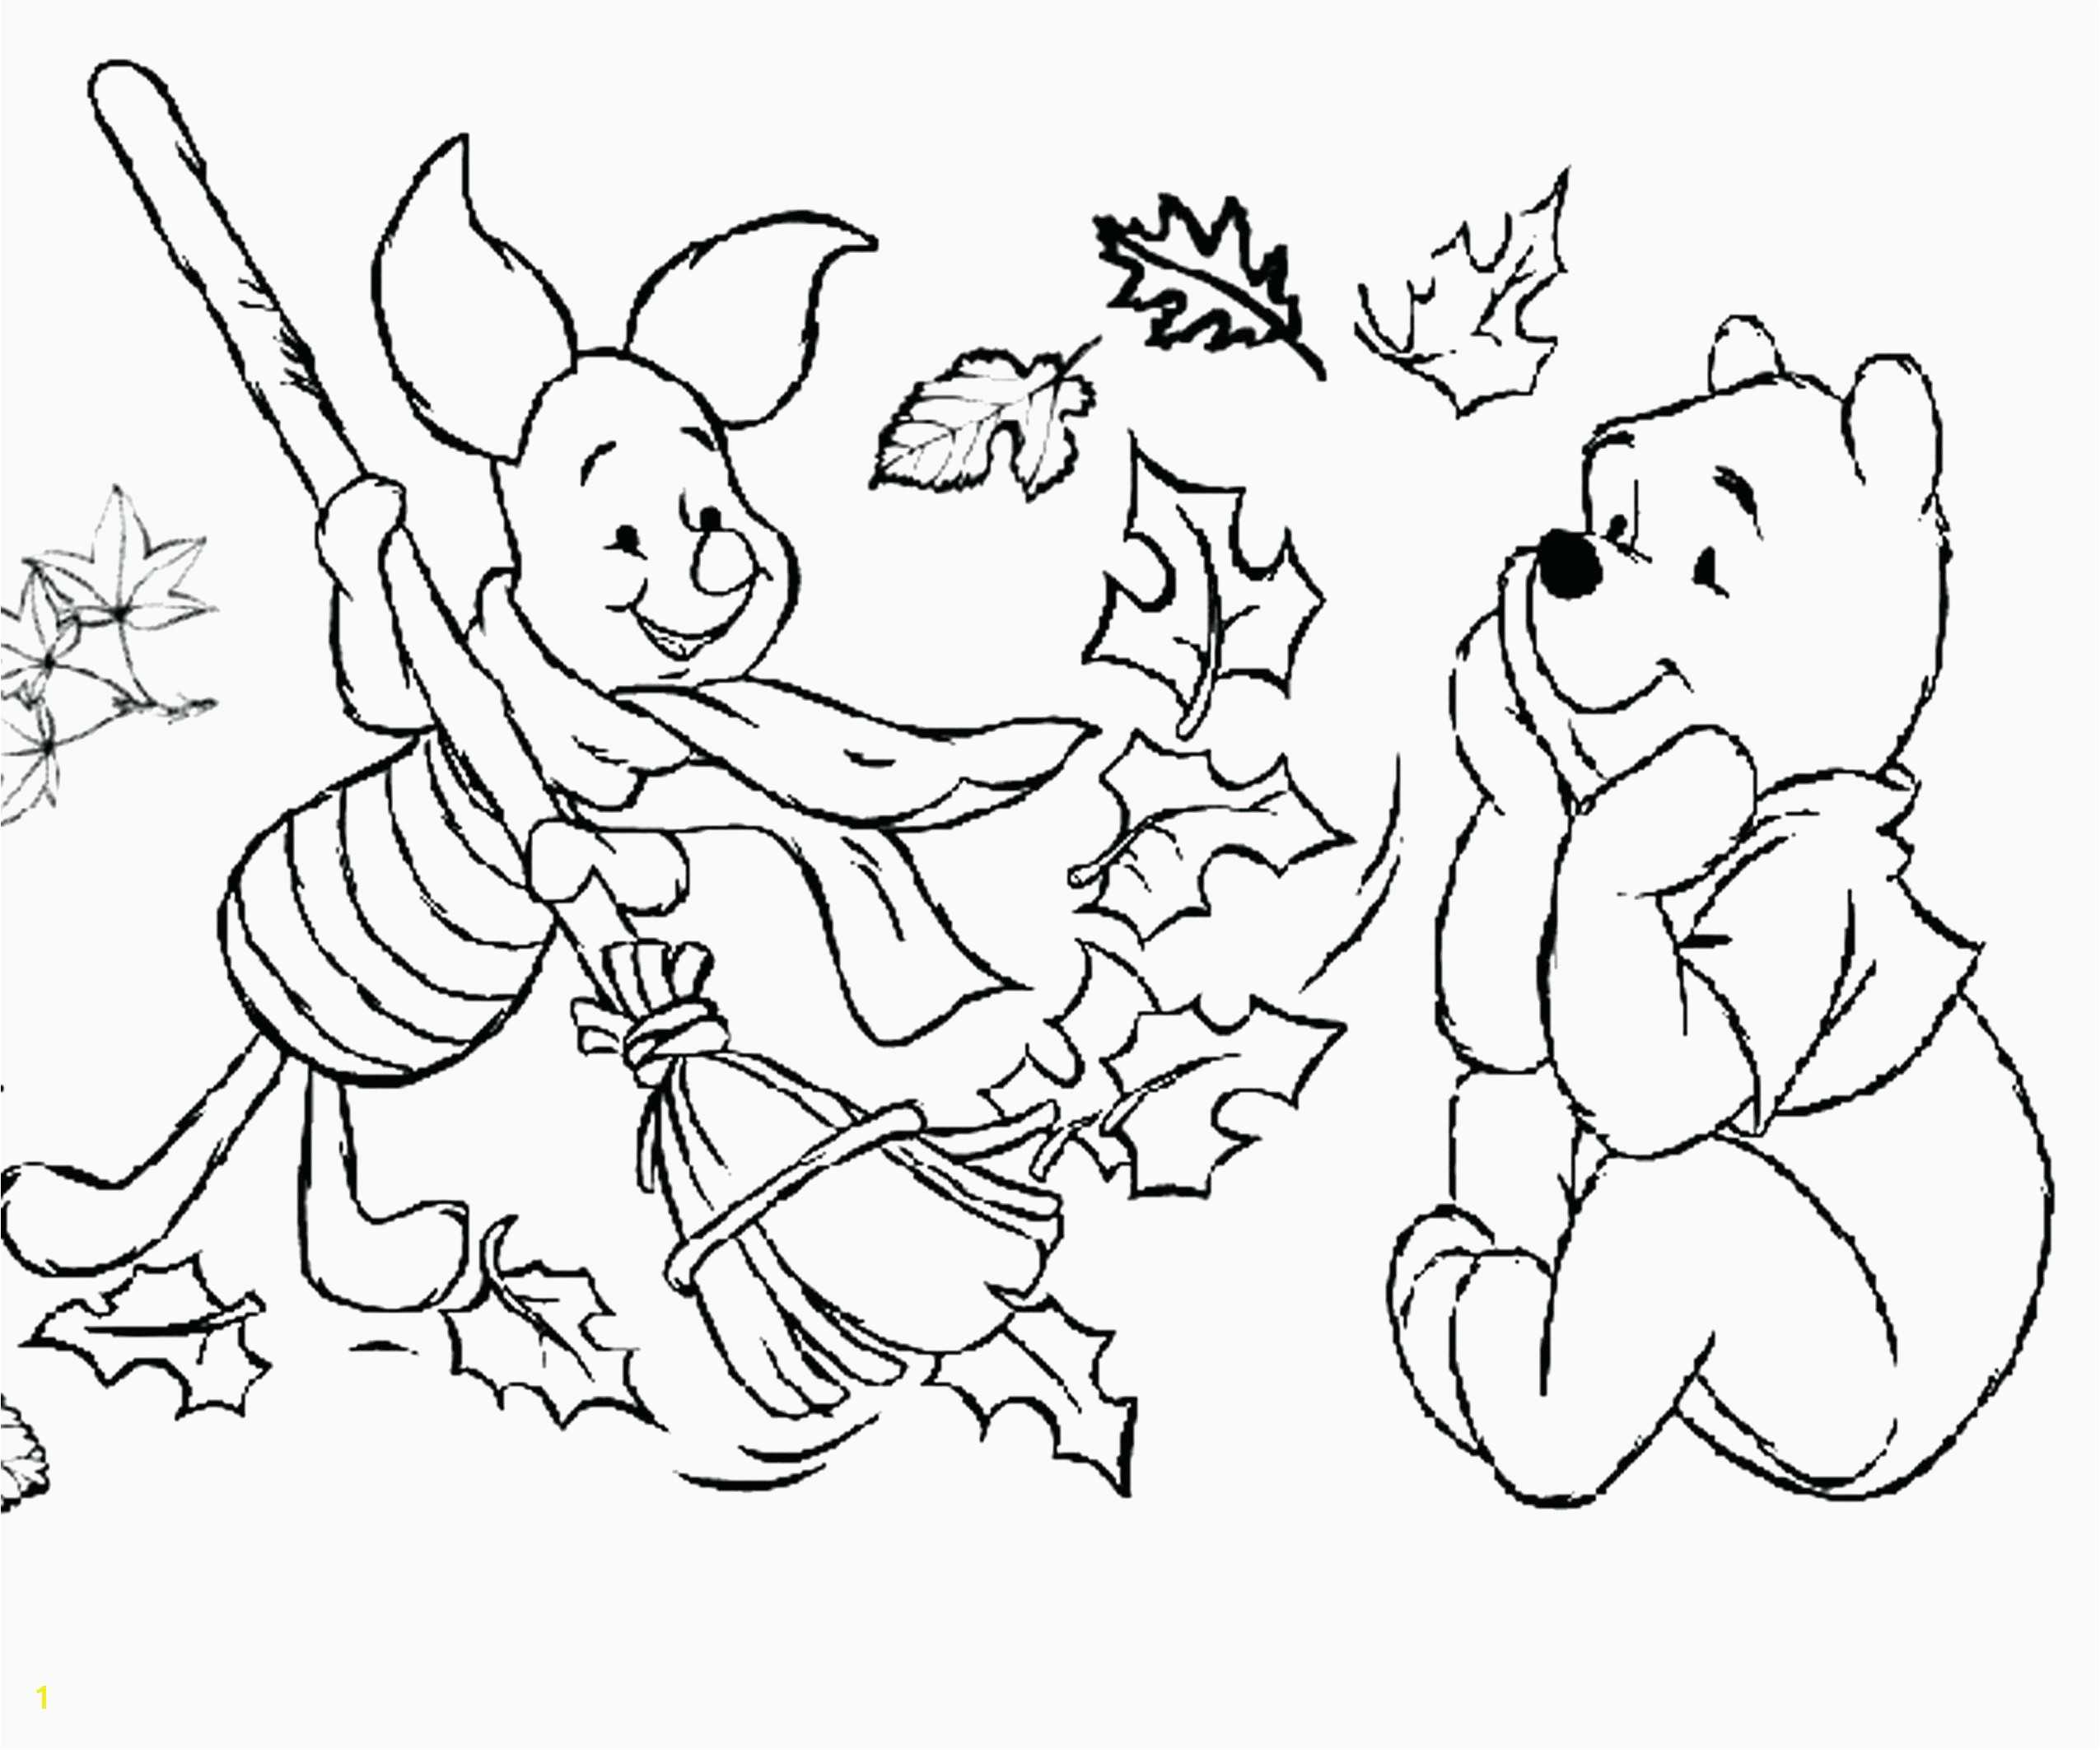 Awesome face coloring sheet Free 15s Fall Coloring Pages 0d Page For Kids Inspirational Kidsboys